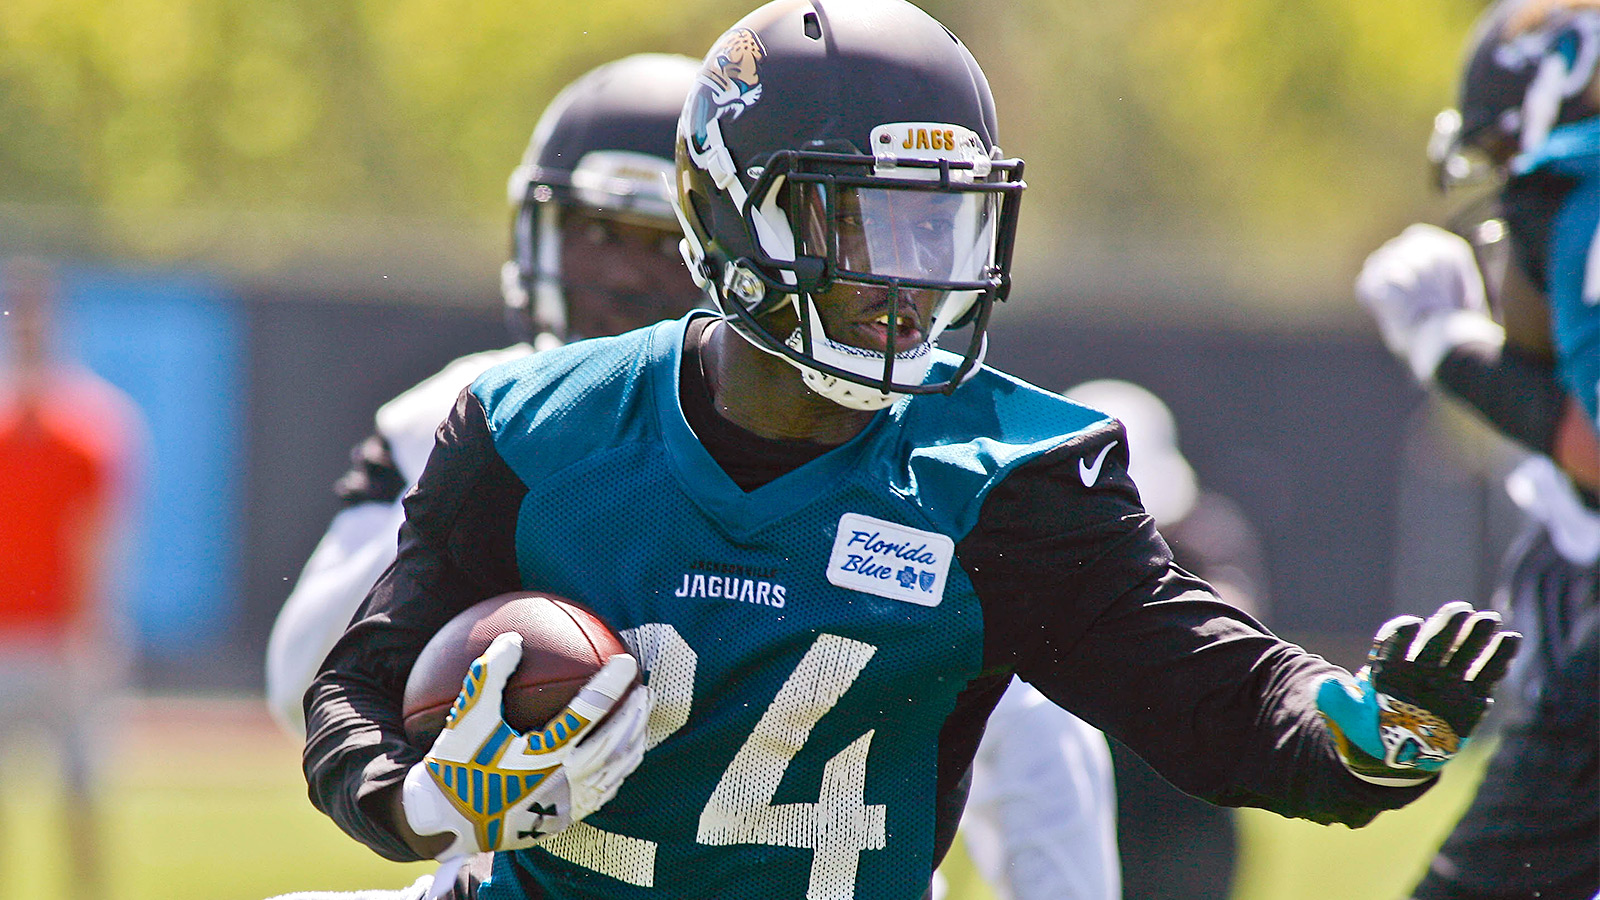 Jaguars' Yeldon returns from injury, eager for NFL debut